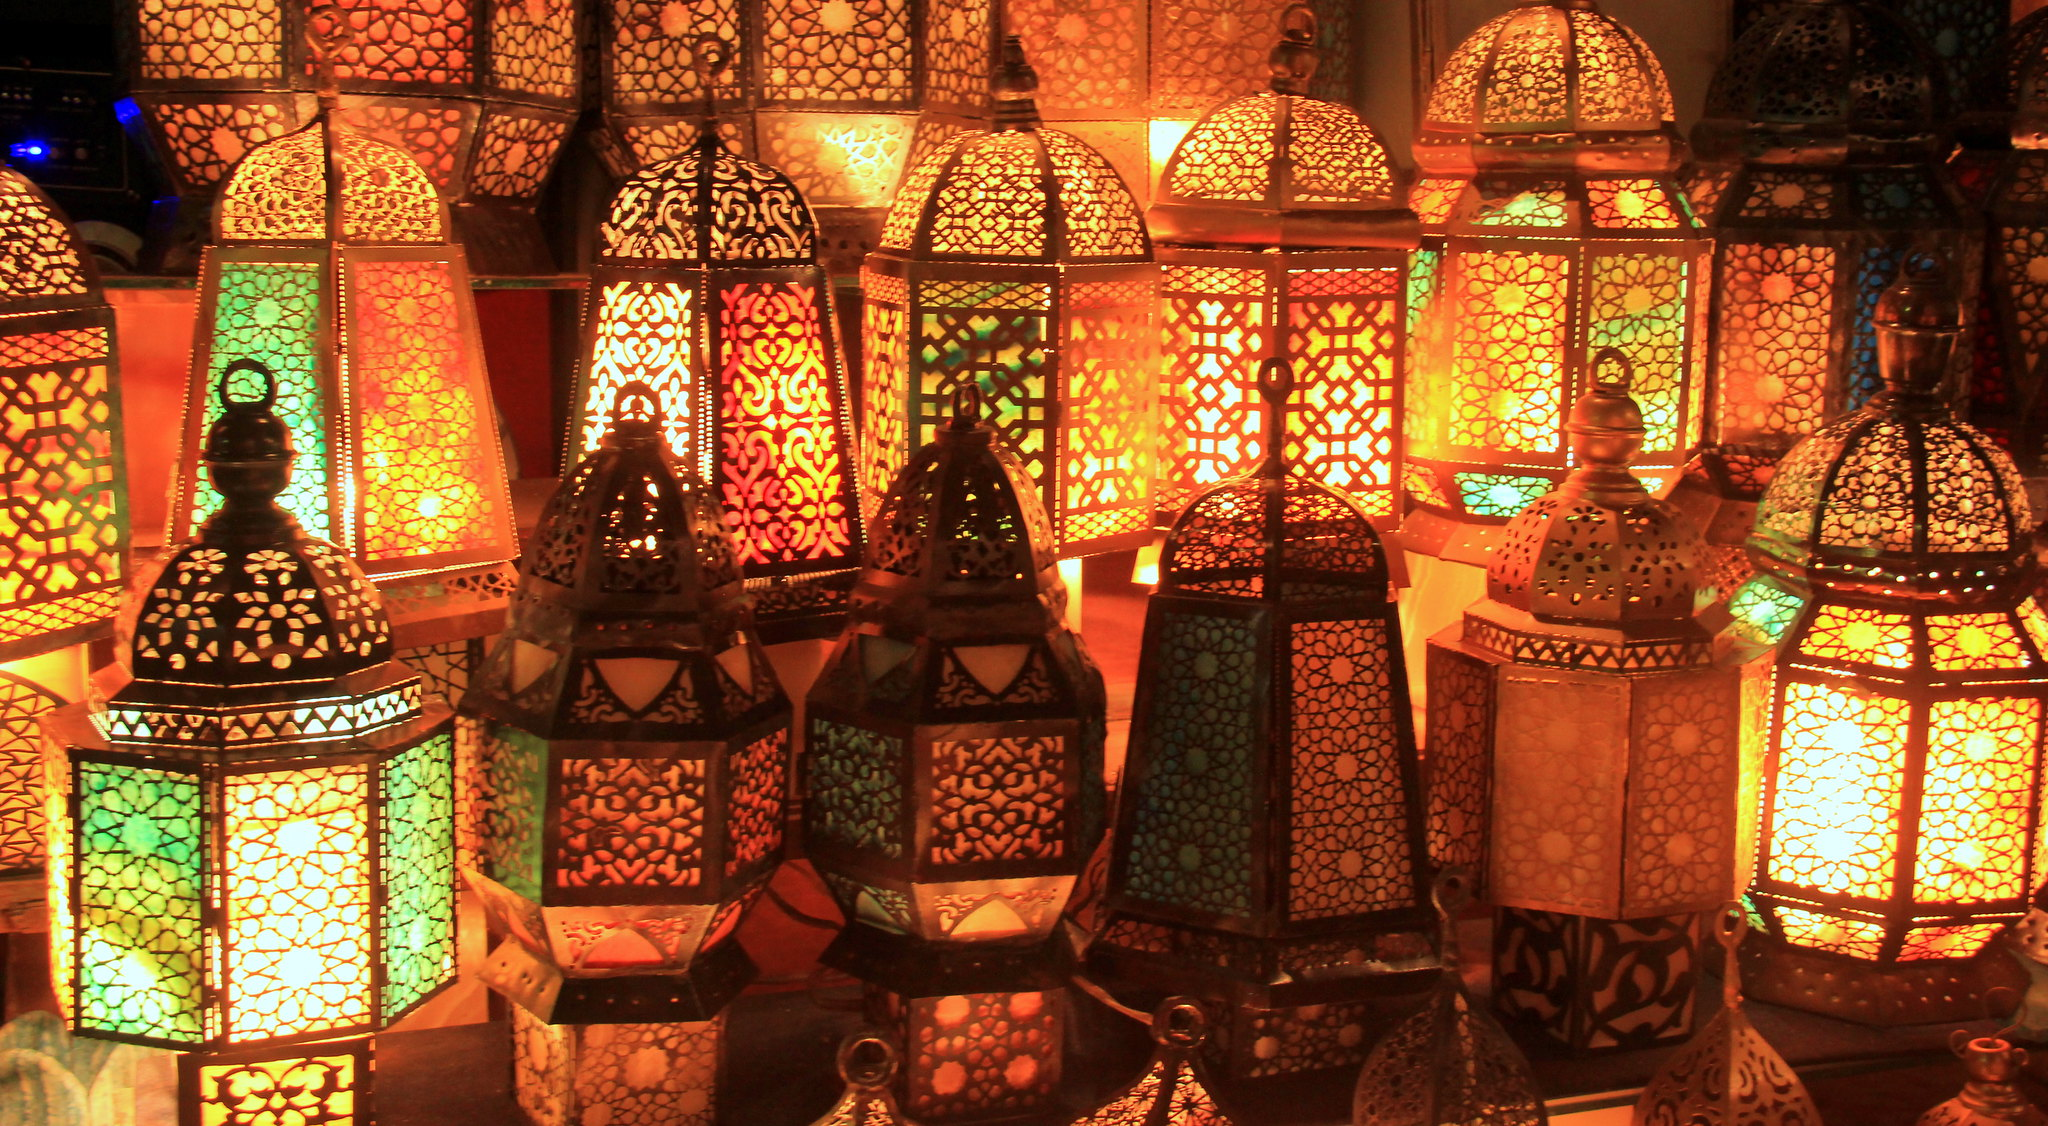 These lamps are mentioned in every khan el khalili guide